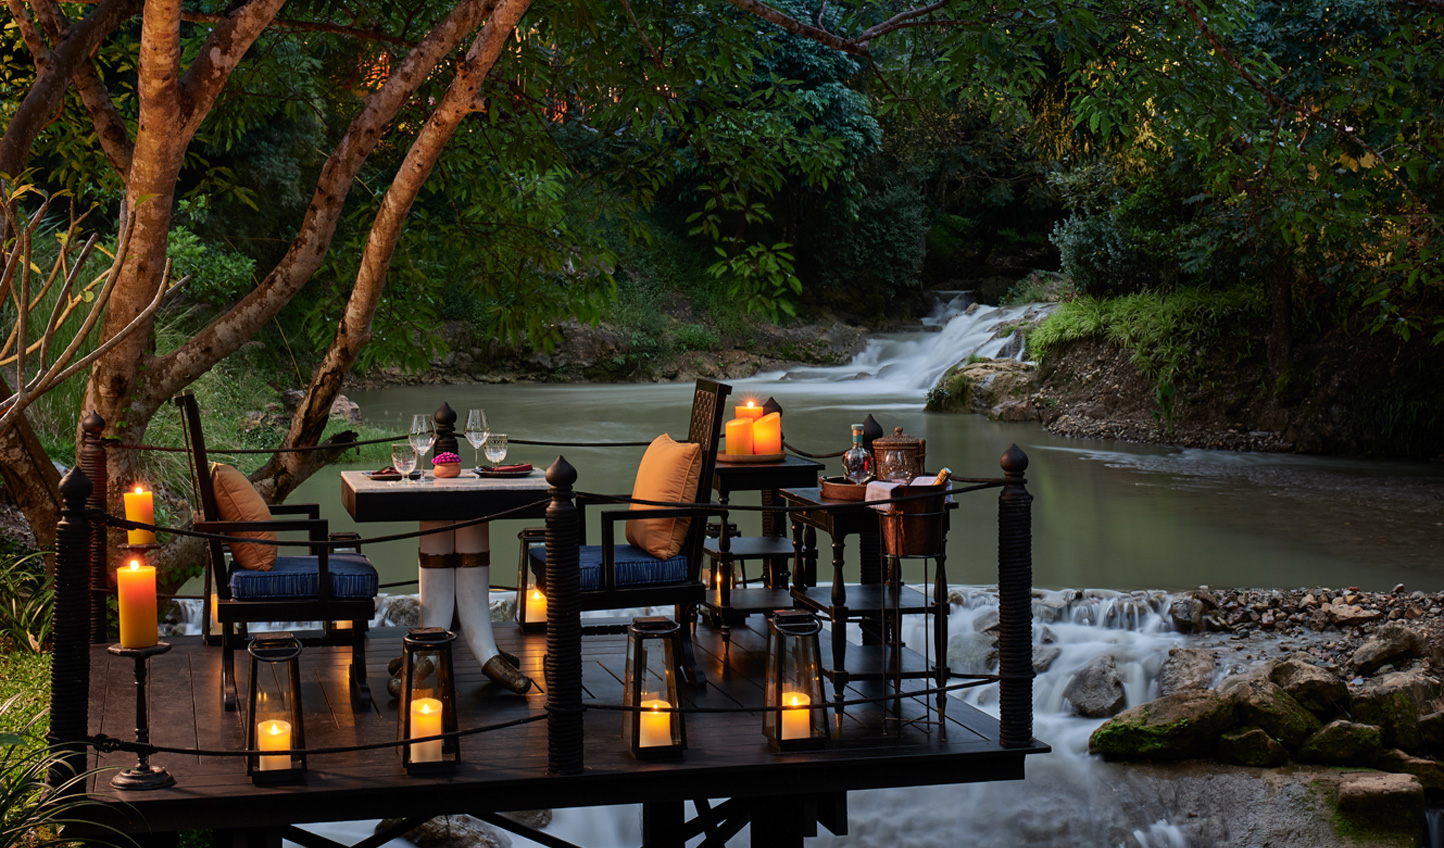 Dine by candlelight amid the romance of the waterfall